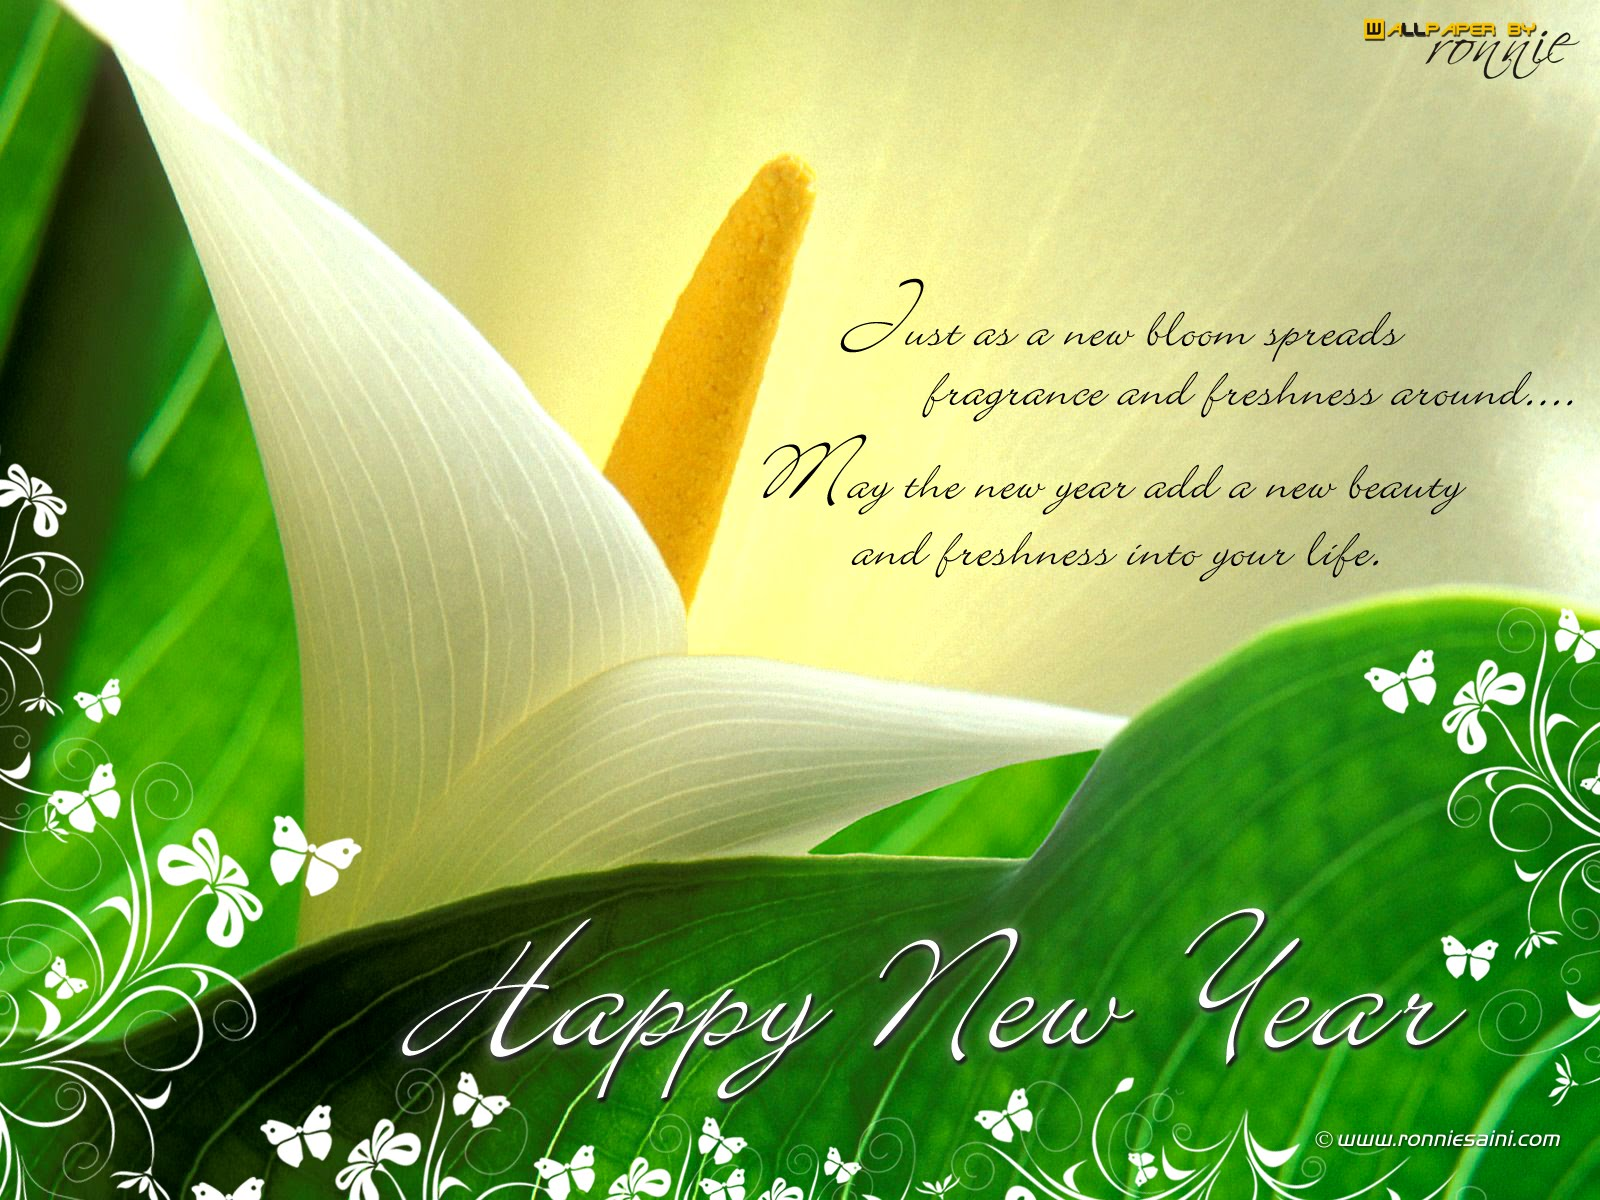 2013 New Year Wishes Wallpapers And Sms. 1600 x 1200.Funny Happy Free New Year Text Messages